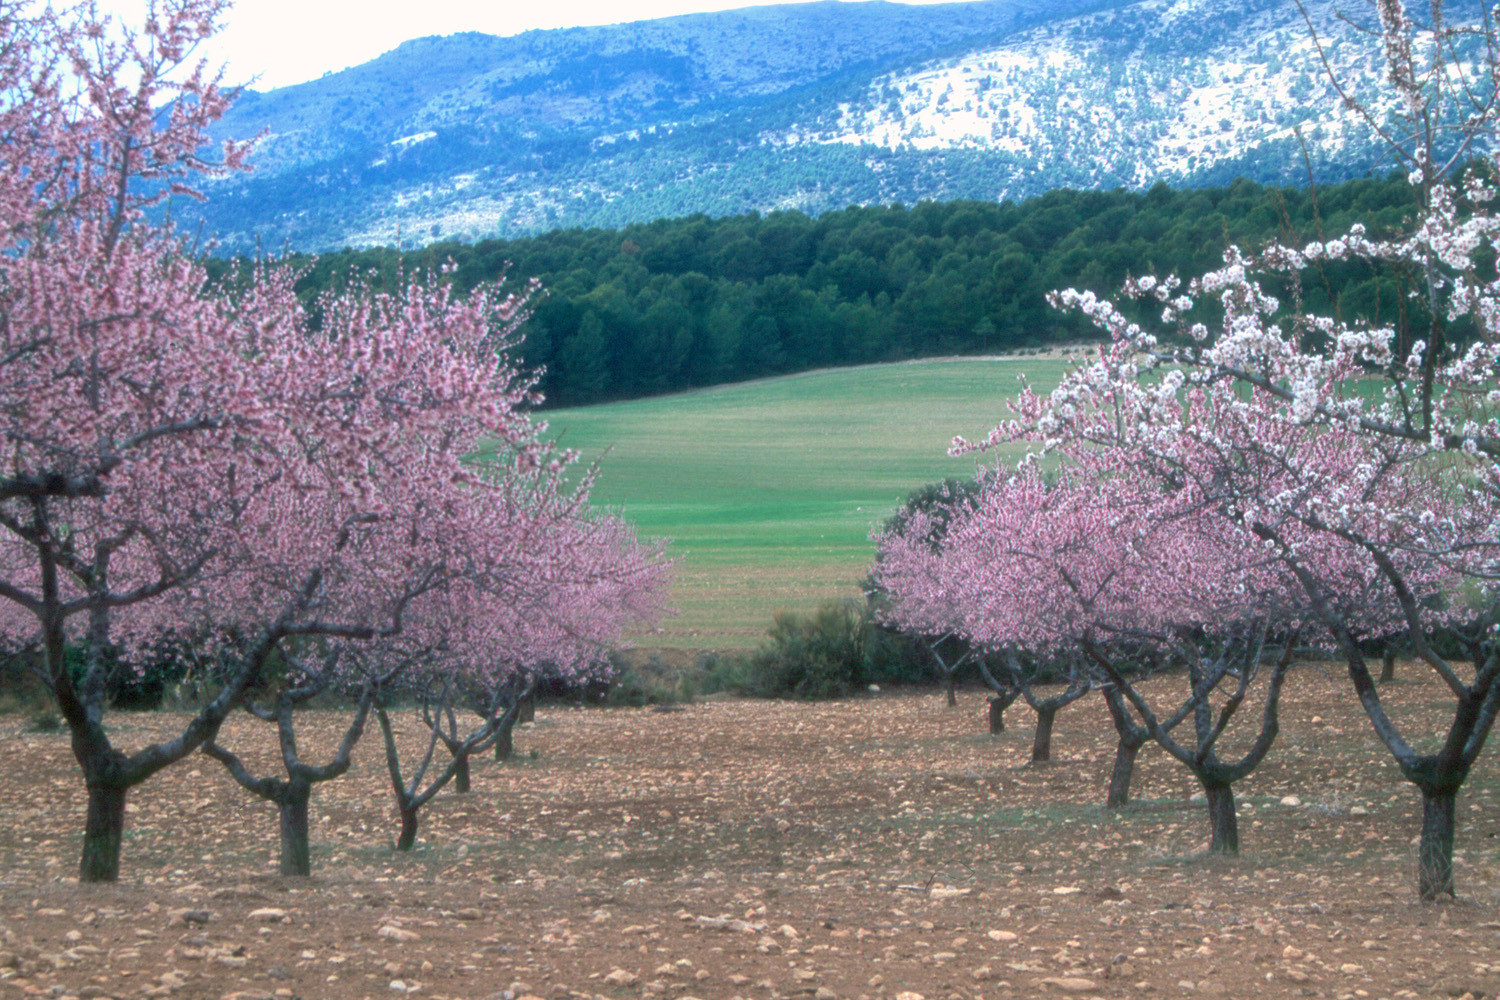 Almond flower field, Huéscar